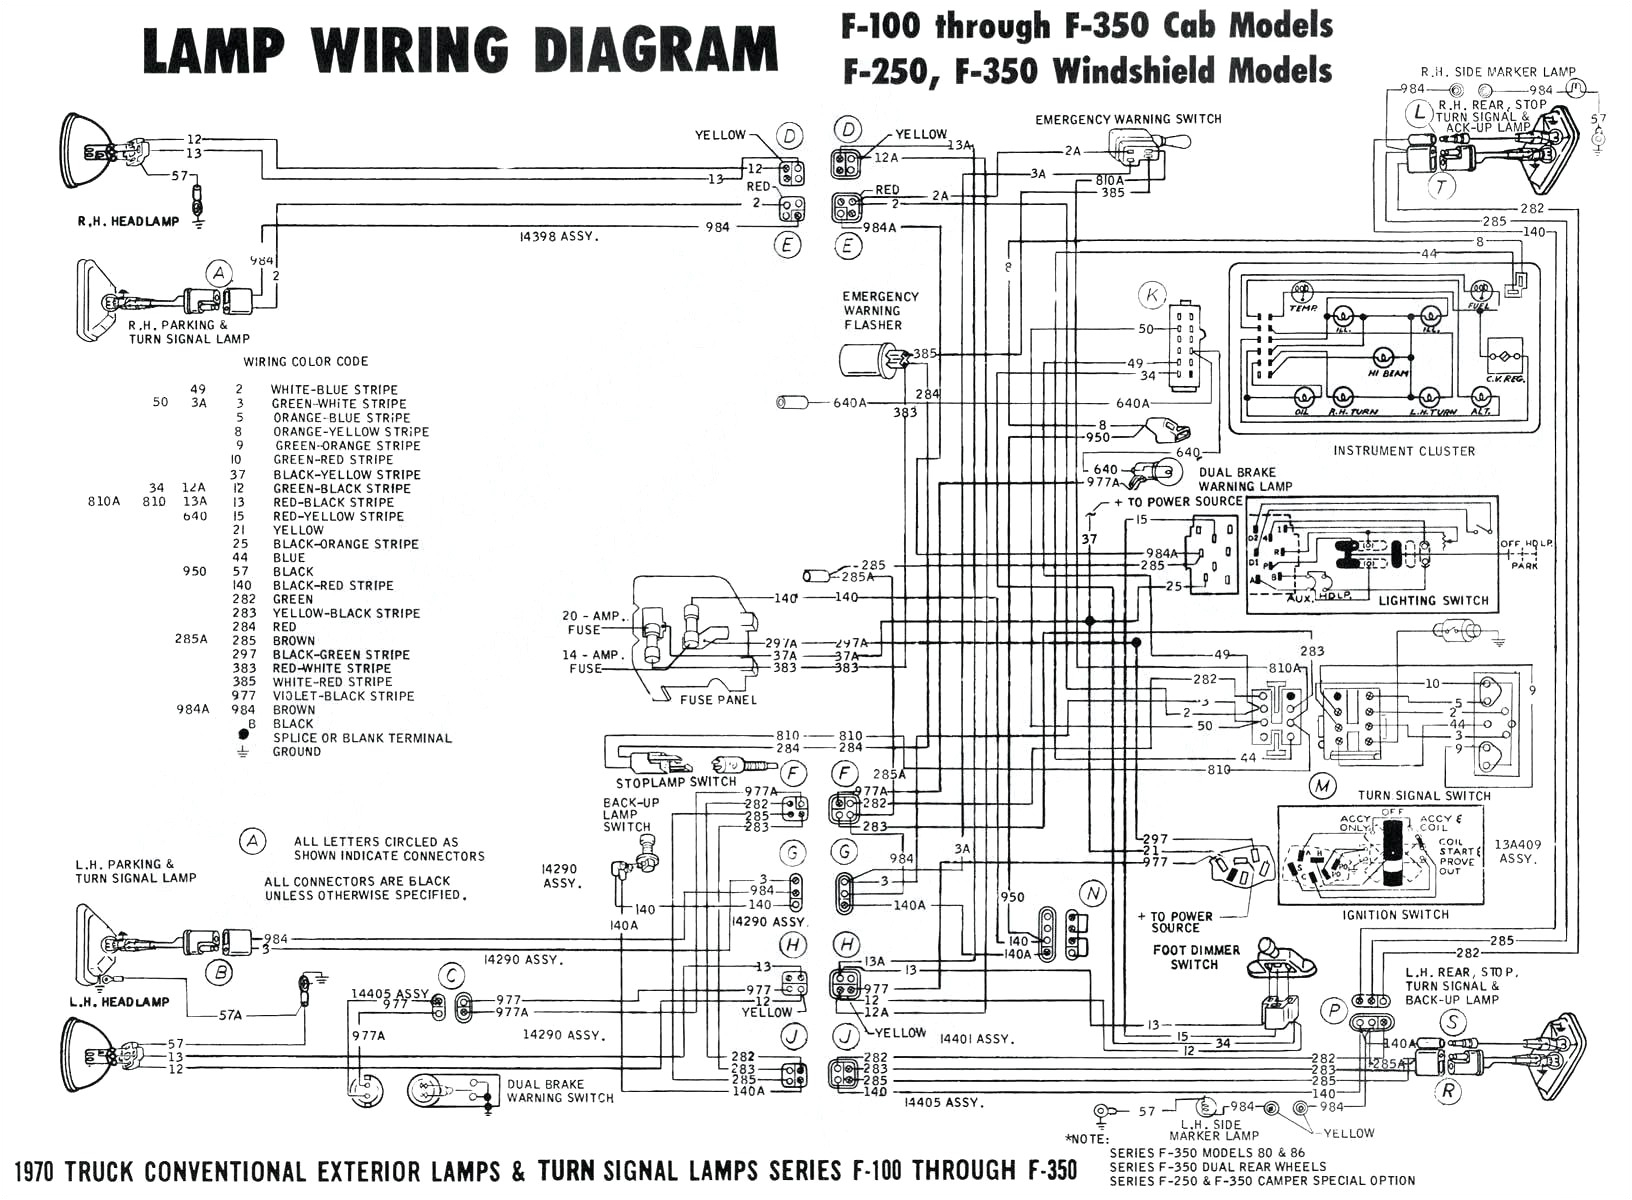 ford f650 wiring diagram ford f650 wiring diagram ford f 150 headlight wiring diagram wire center u2022 rh daniablub 7j jpg